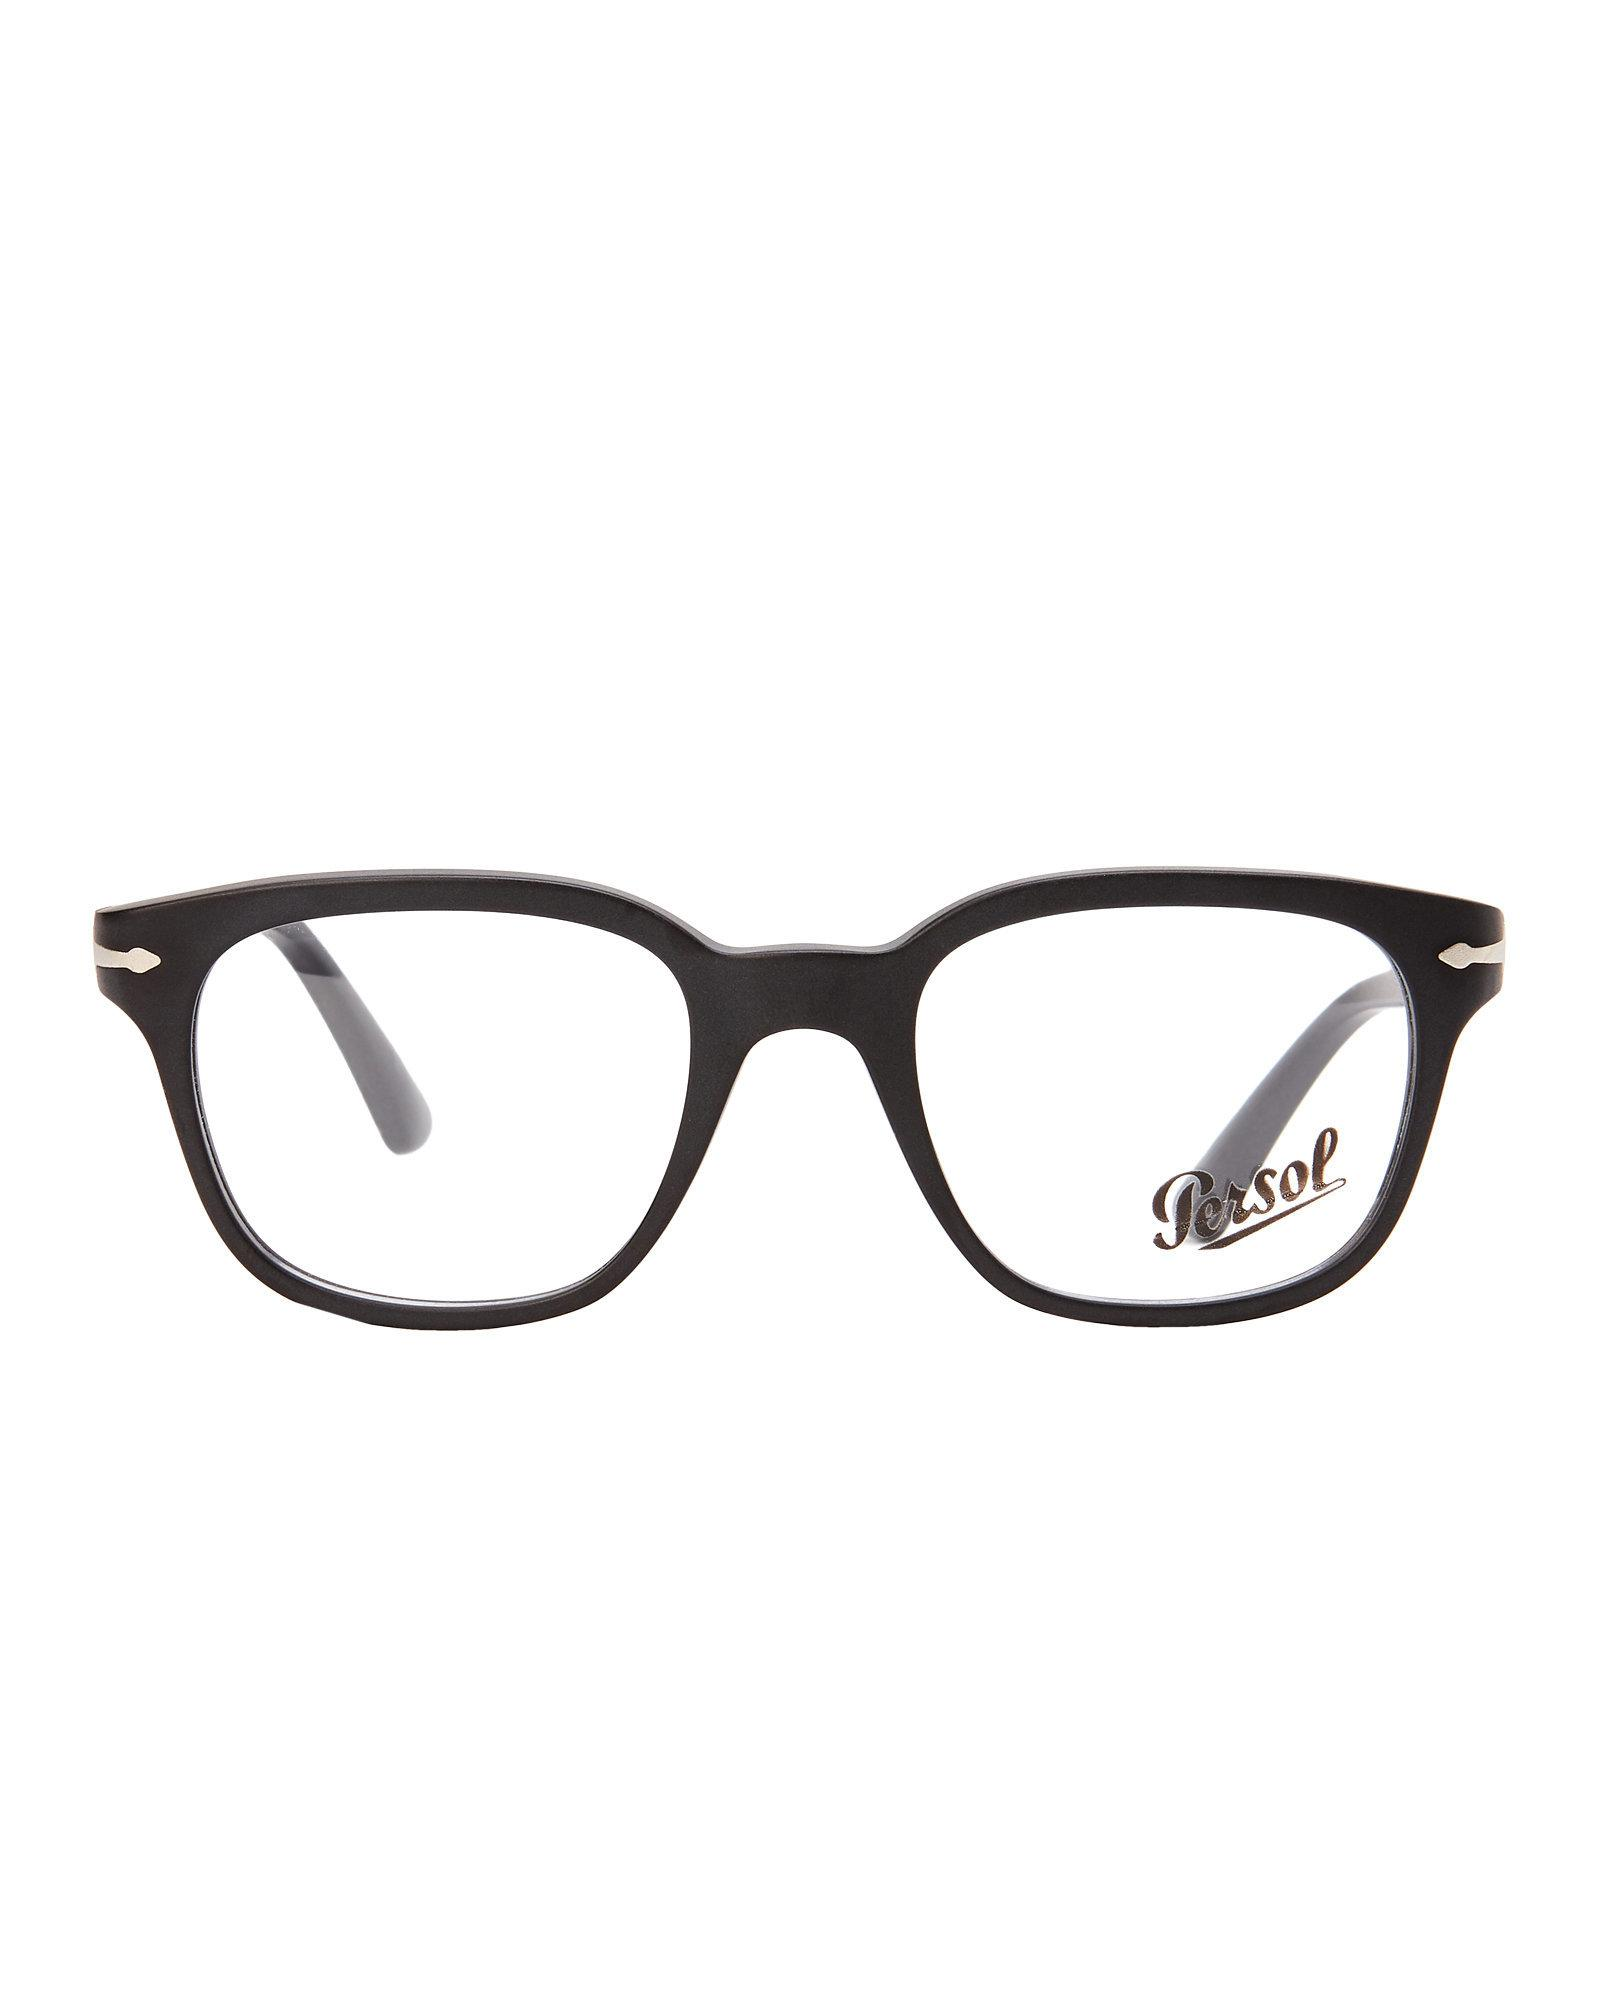 Lyst - Persol Po3093 Black Oval Optical Frames in Black